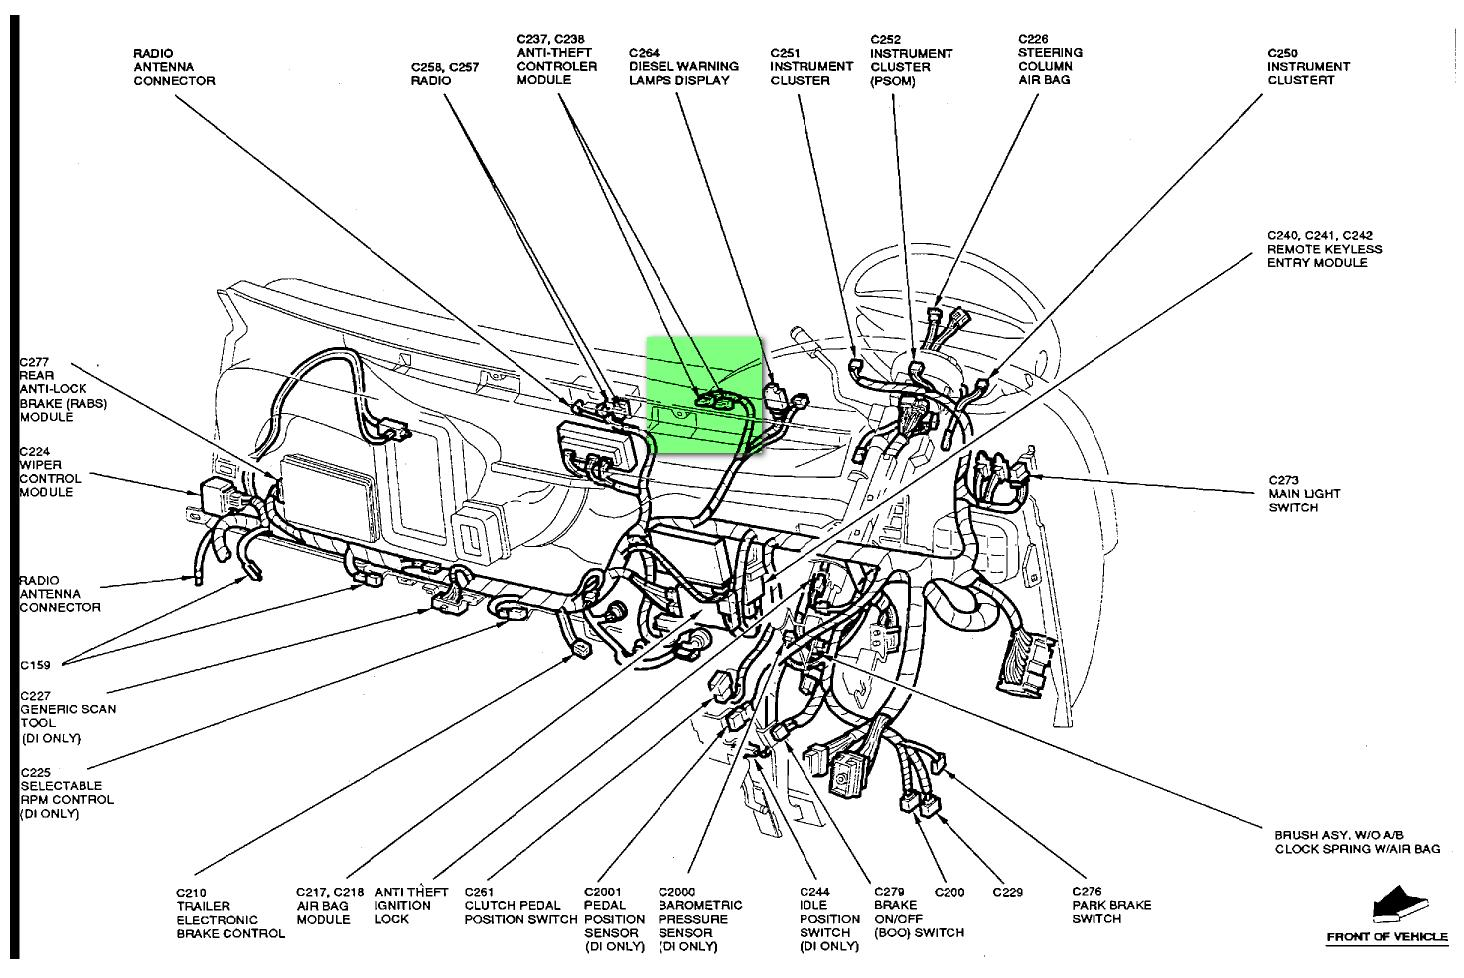 1994 Ford Bronco Wiring Diagram For Psom Automotive Lights And F 150 Links Anti Theft System Rh Schwimserver5 Com Fuel Pump 1993